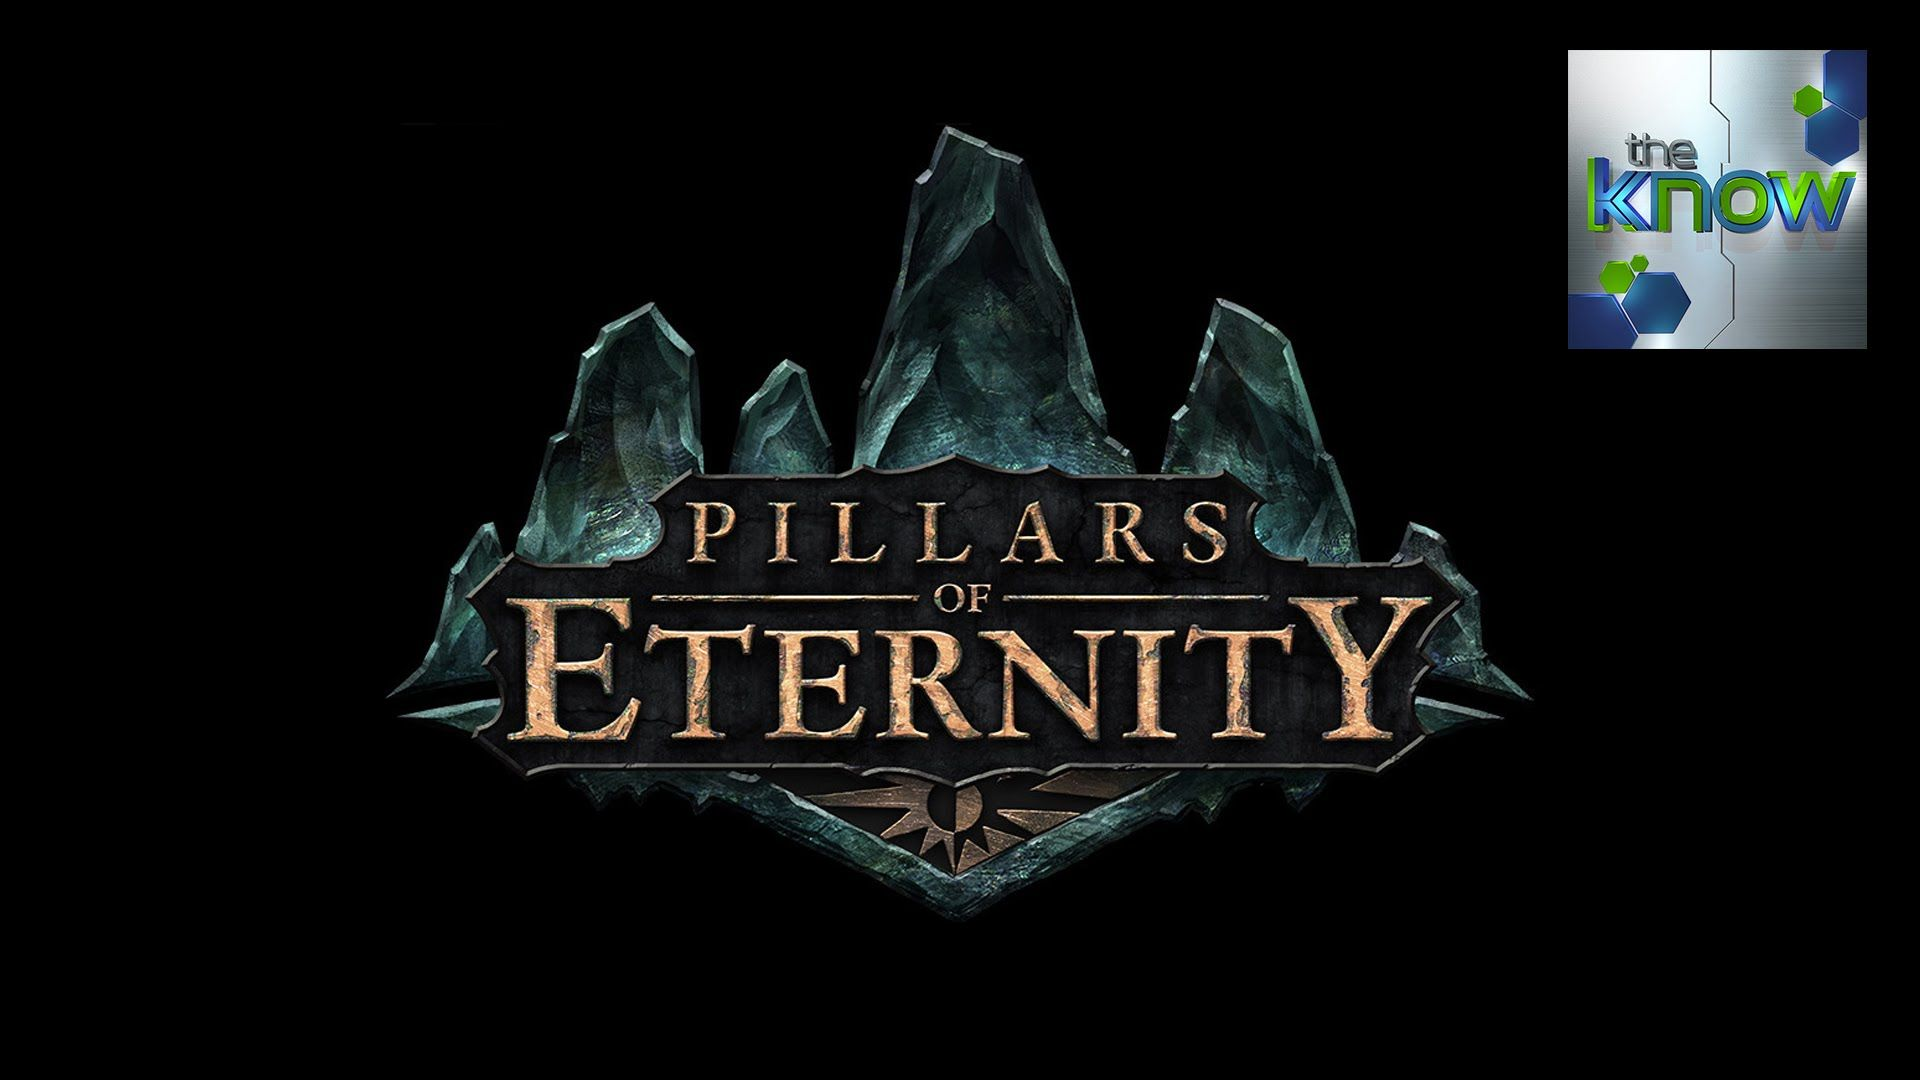 PAX South: Pillars of Eternity Interview - The Know